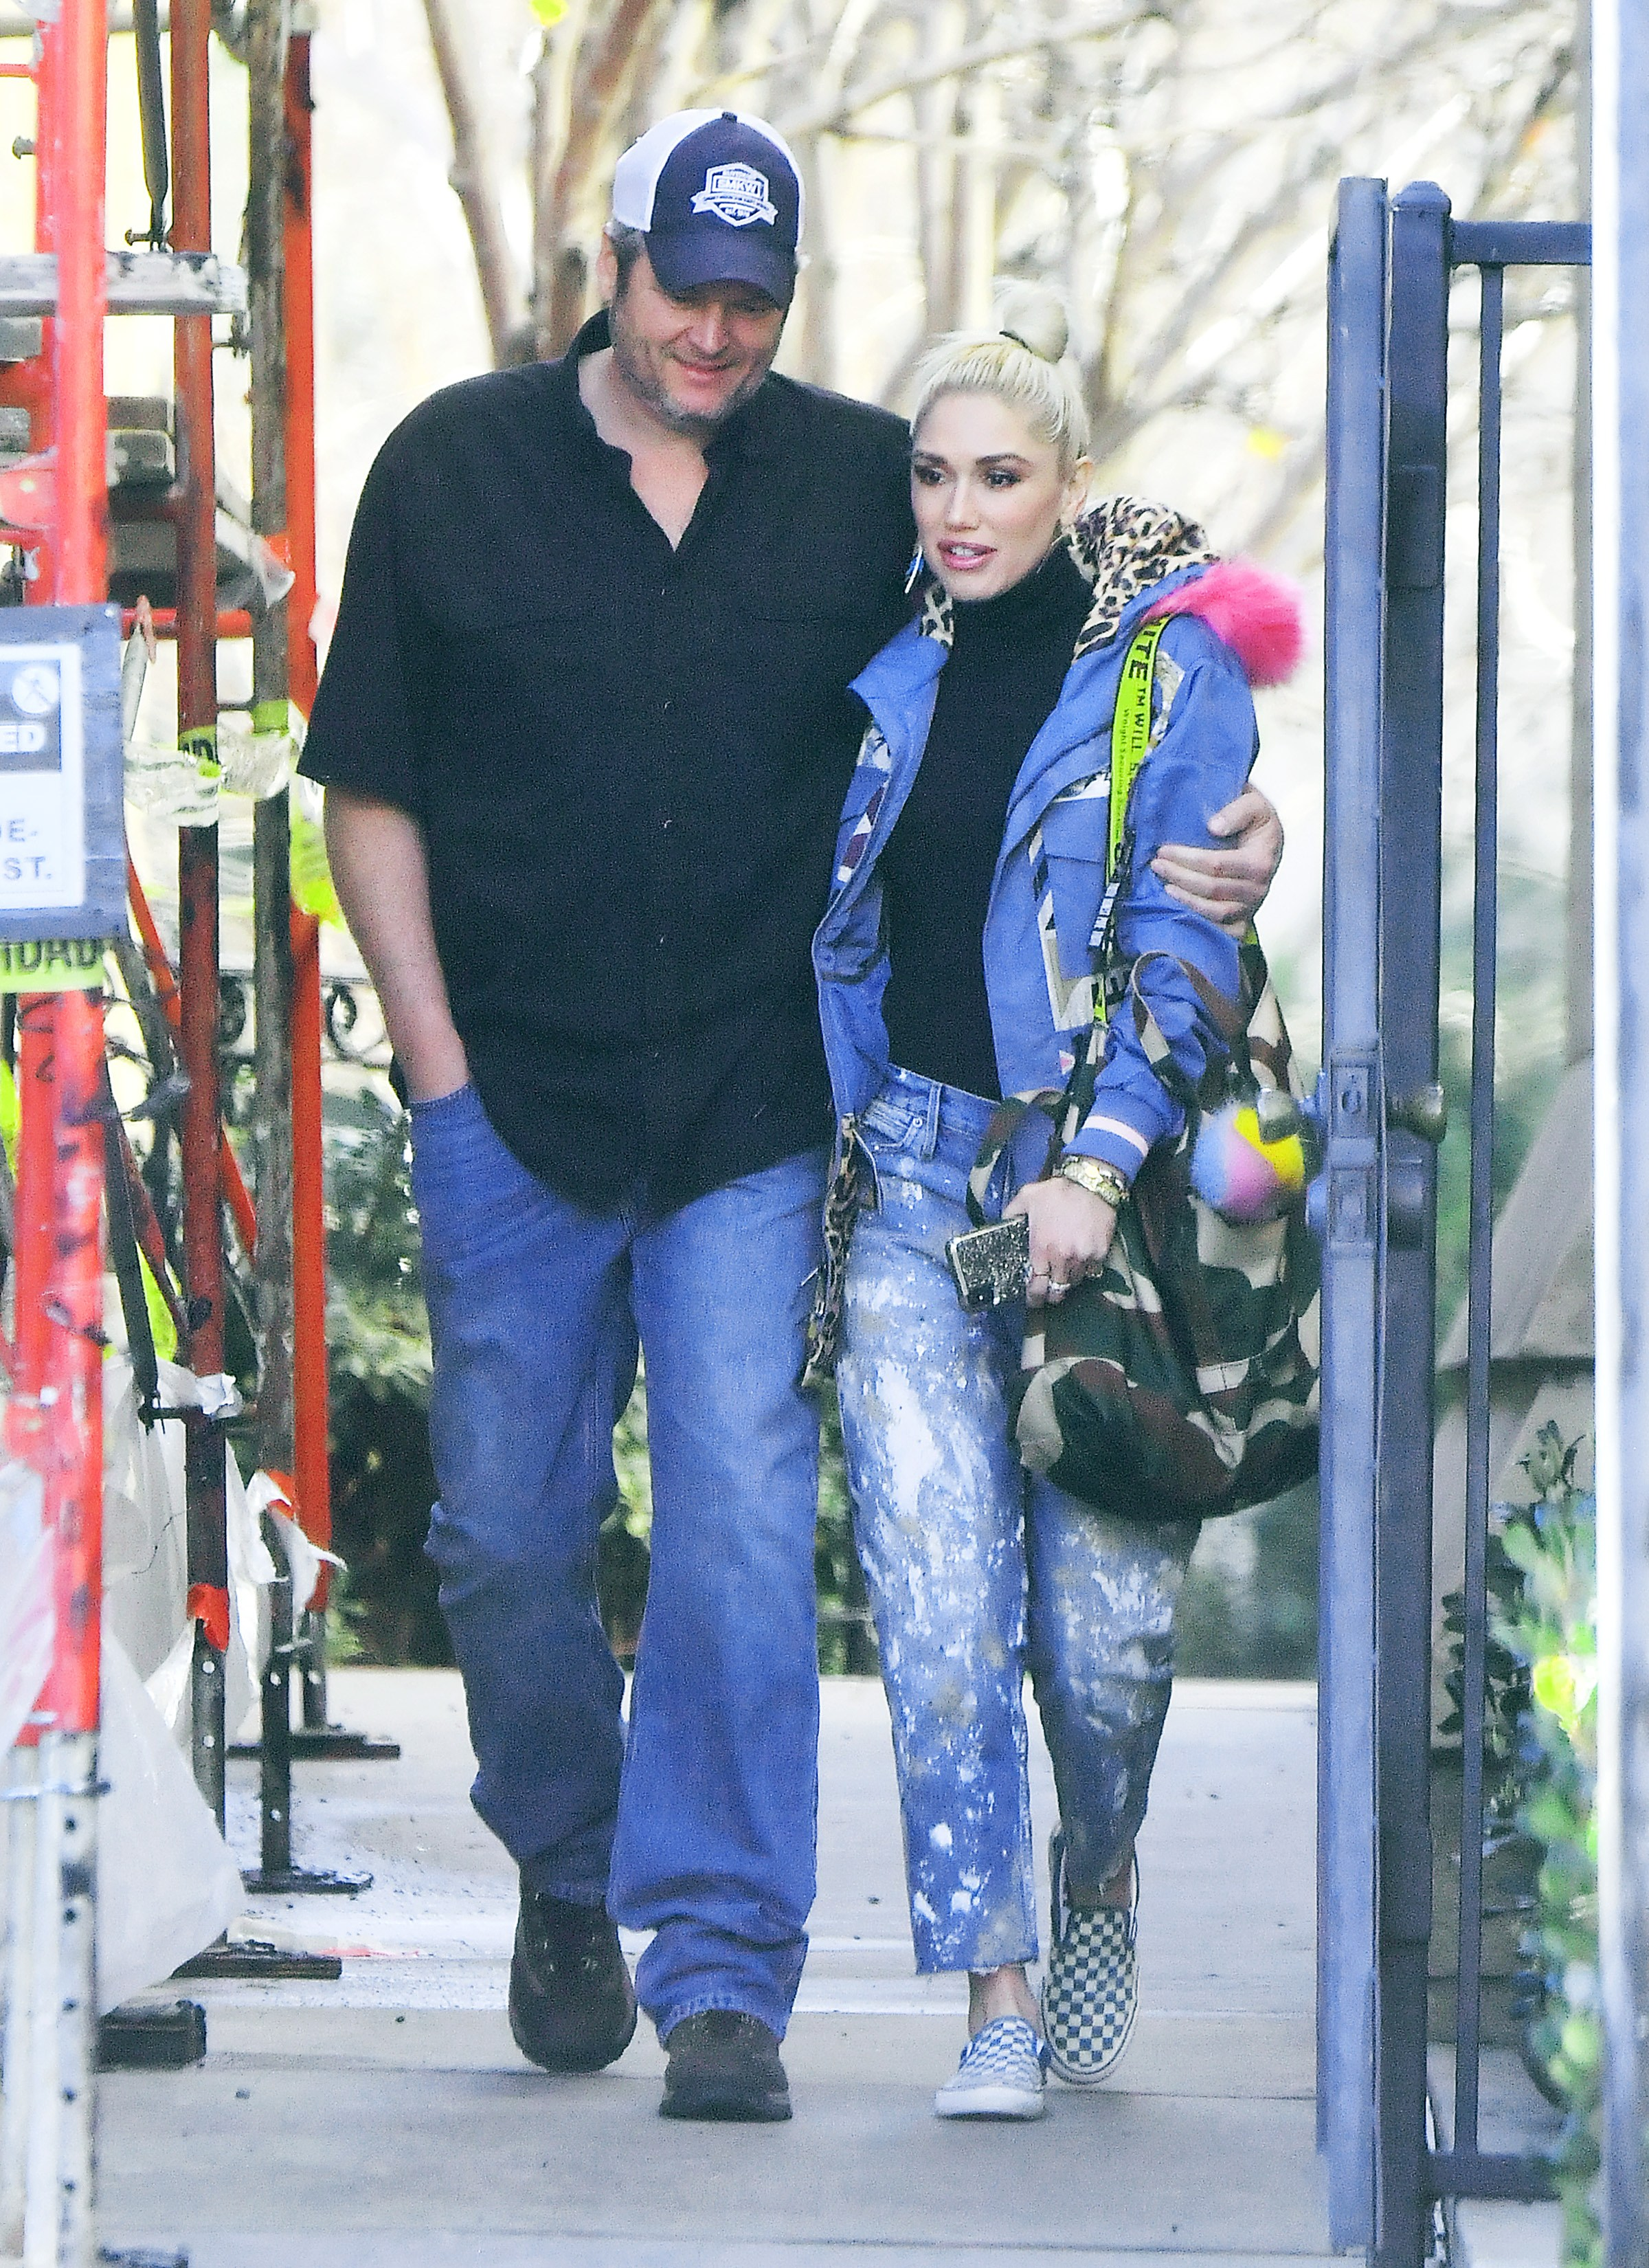 Blake Shelton and Gwen Stefani Look in Love While Out in L.A.